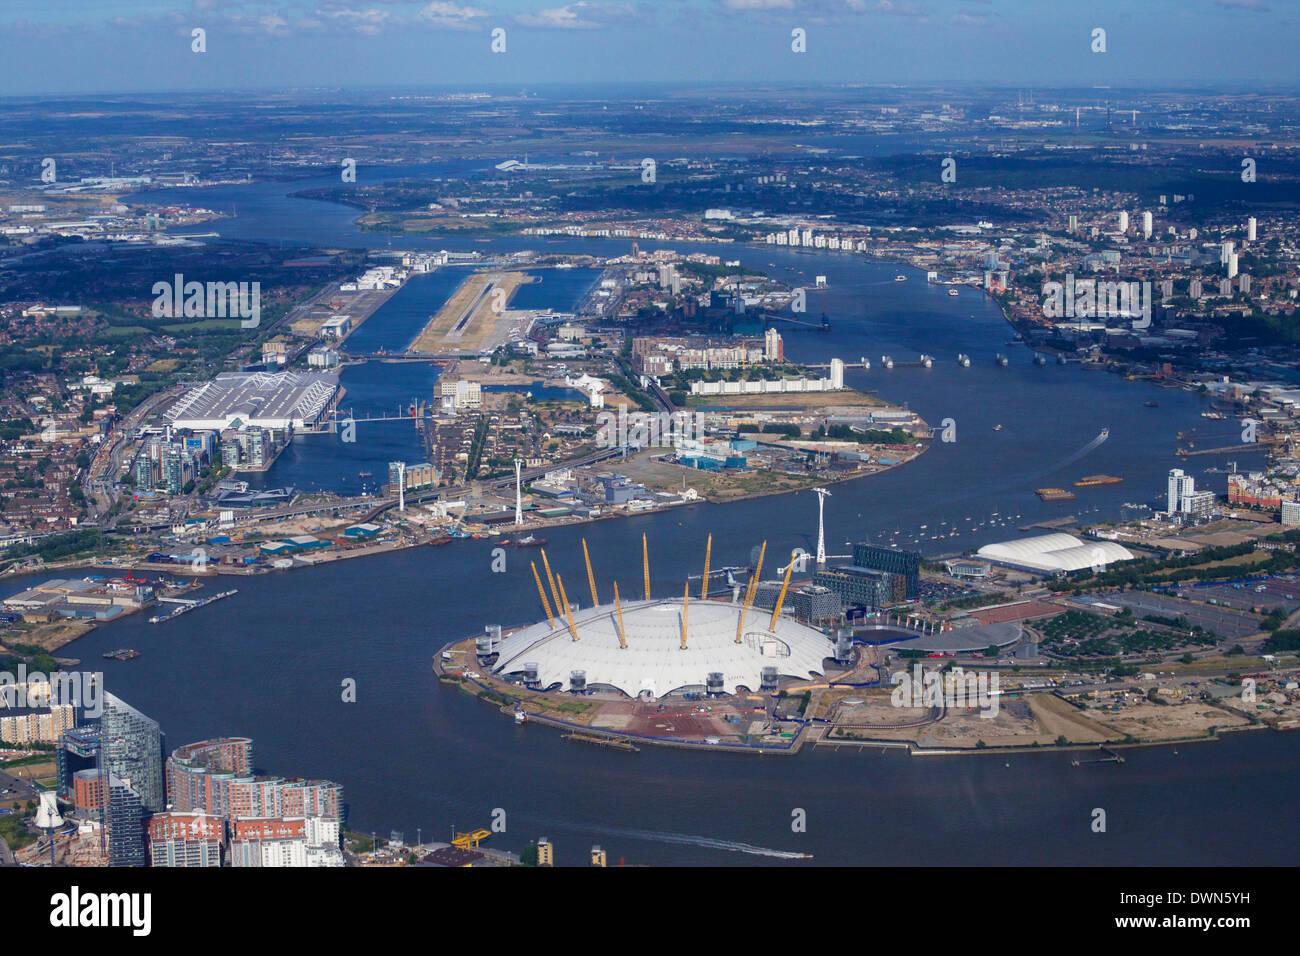 Aerial view of London City Airport and O2 Arena, London, England, United Kingdom, Europe - Stock Image